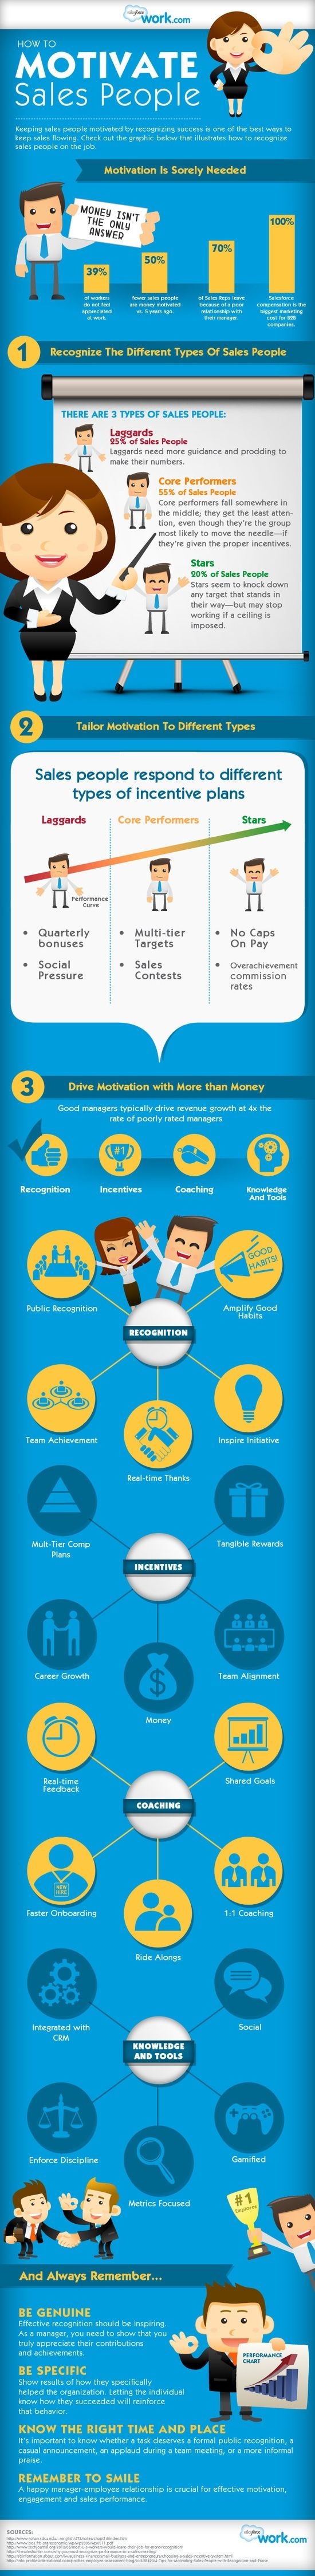 Recognize your team...How to Motivate : Teeth to Smiles, Smiles to Sales. #infographic